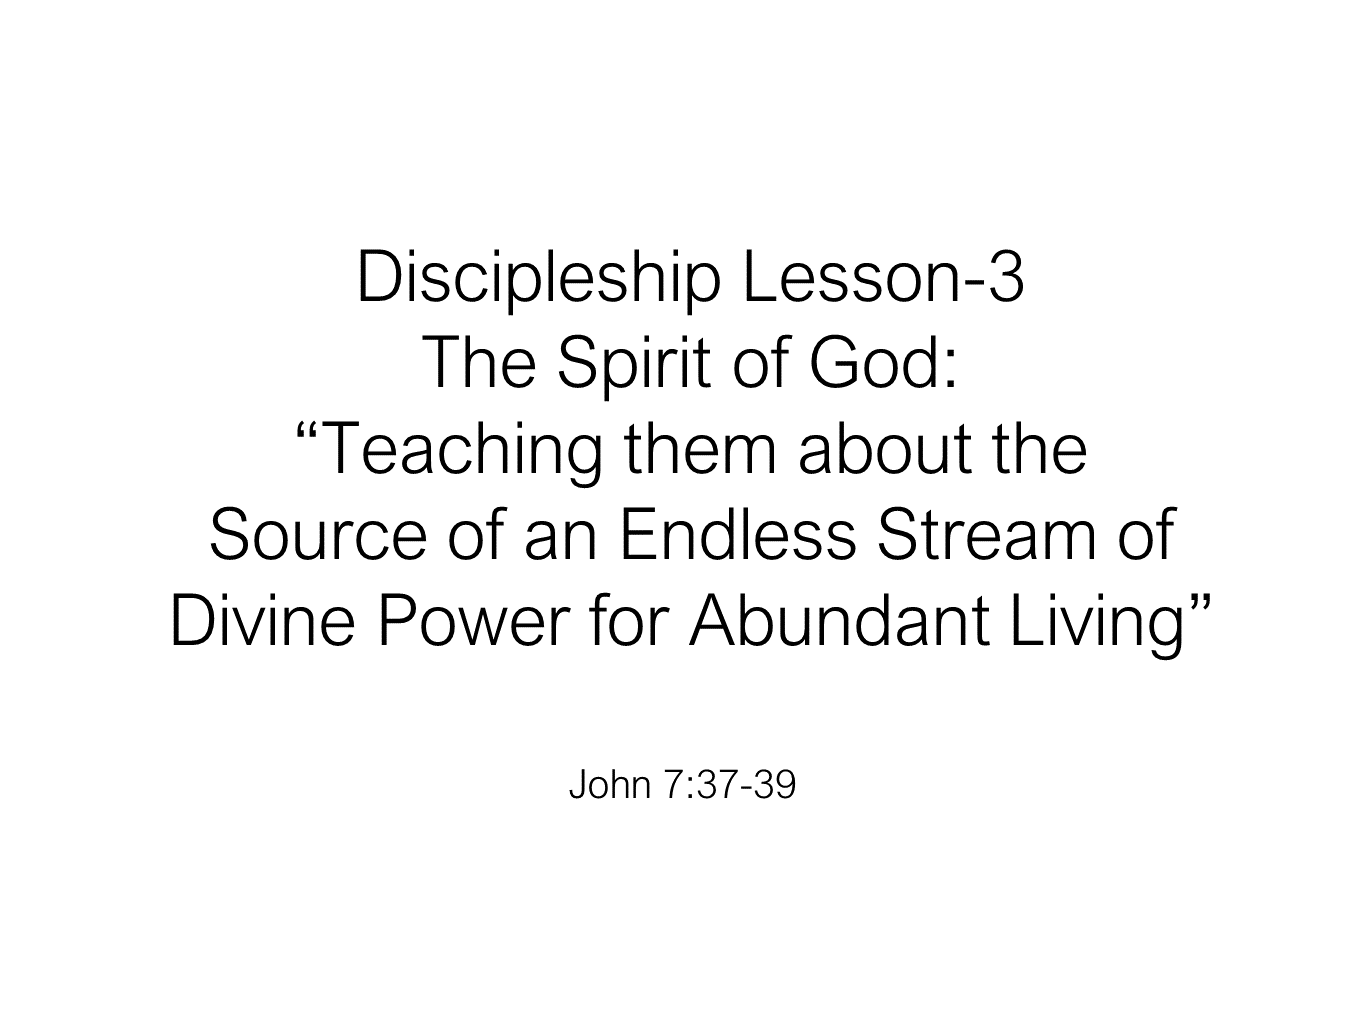 ESH-28 - Discipleship Lesson 4 - The Spirit Of God Teaching Them About The Source Of An Endl (21)